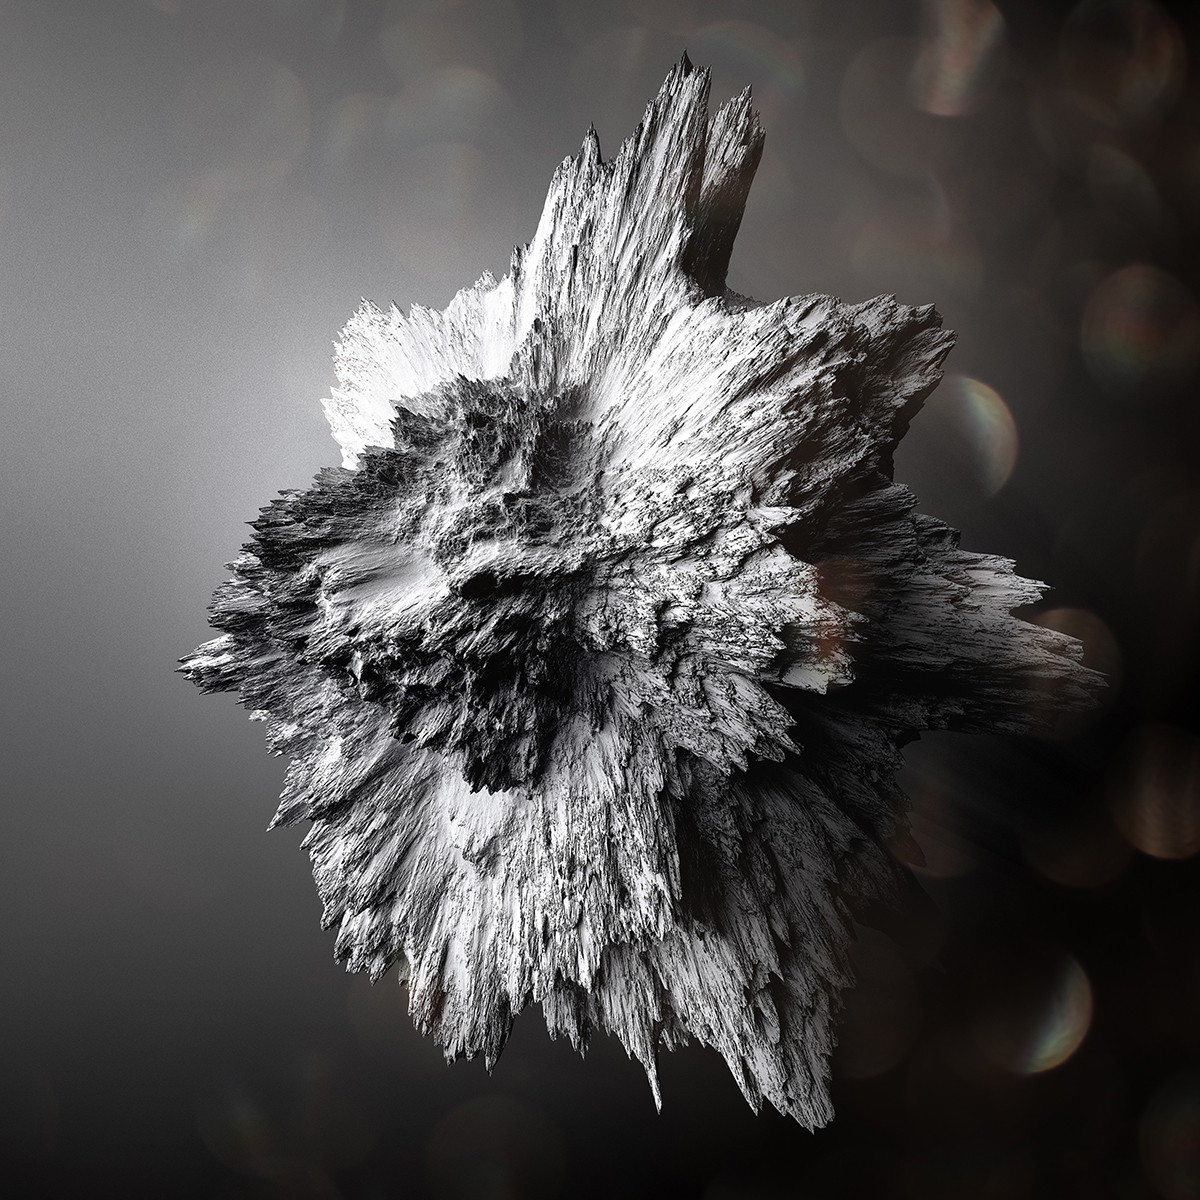 Crystallized Asteroïds